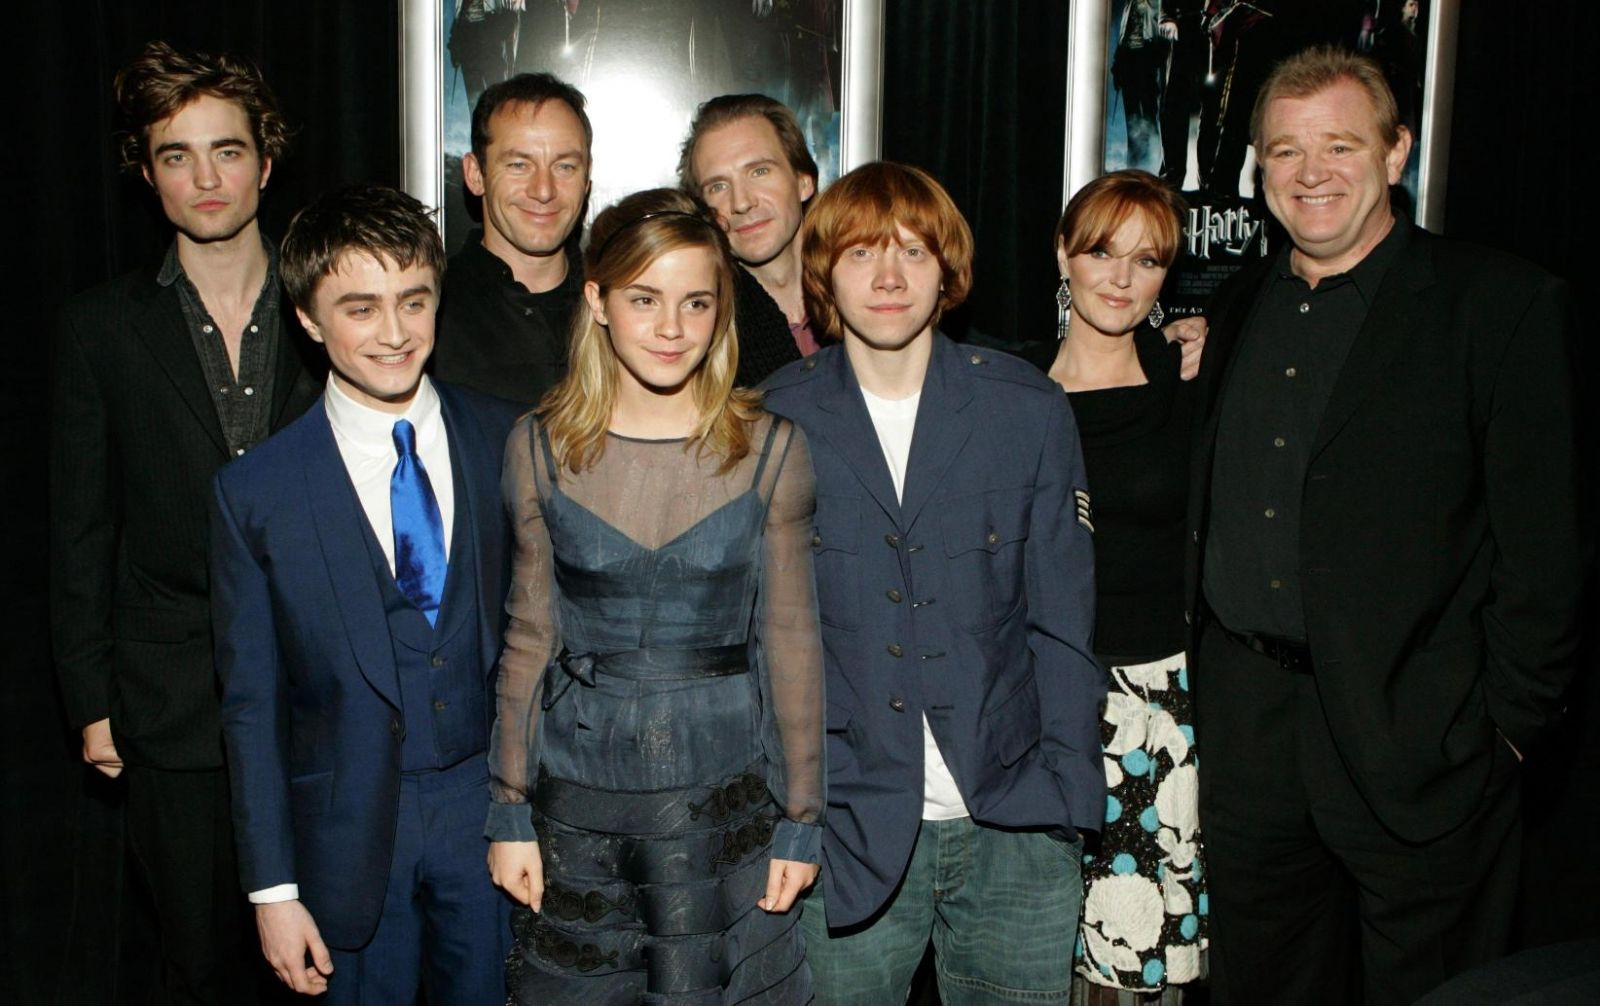 The Actors And Actresses Robert Pattinson Movies Goblet Of Fire Harry Potter Goblet